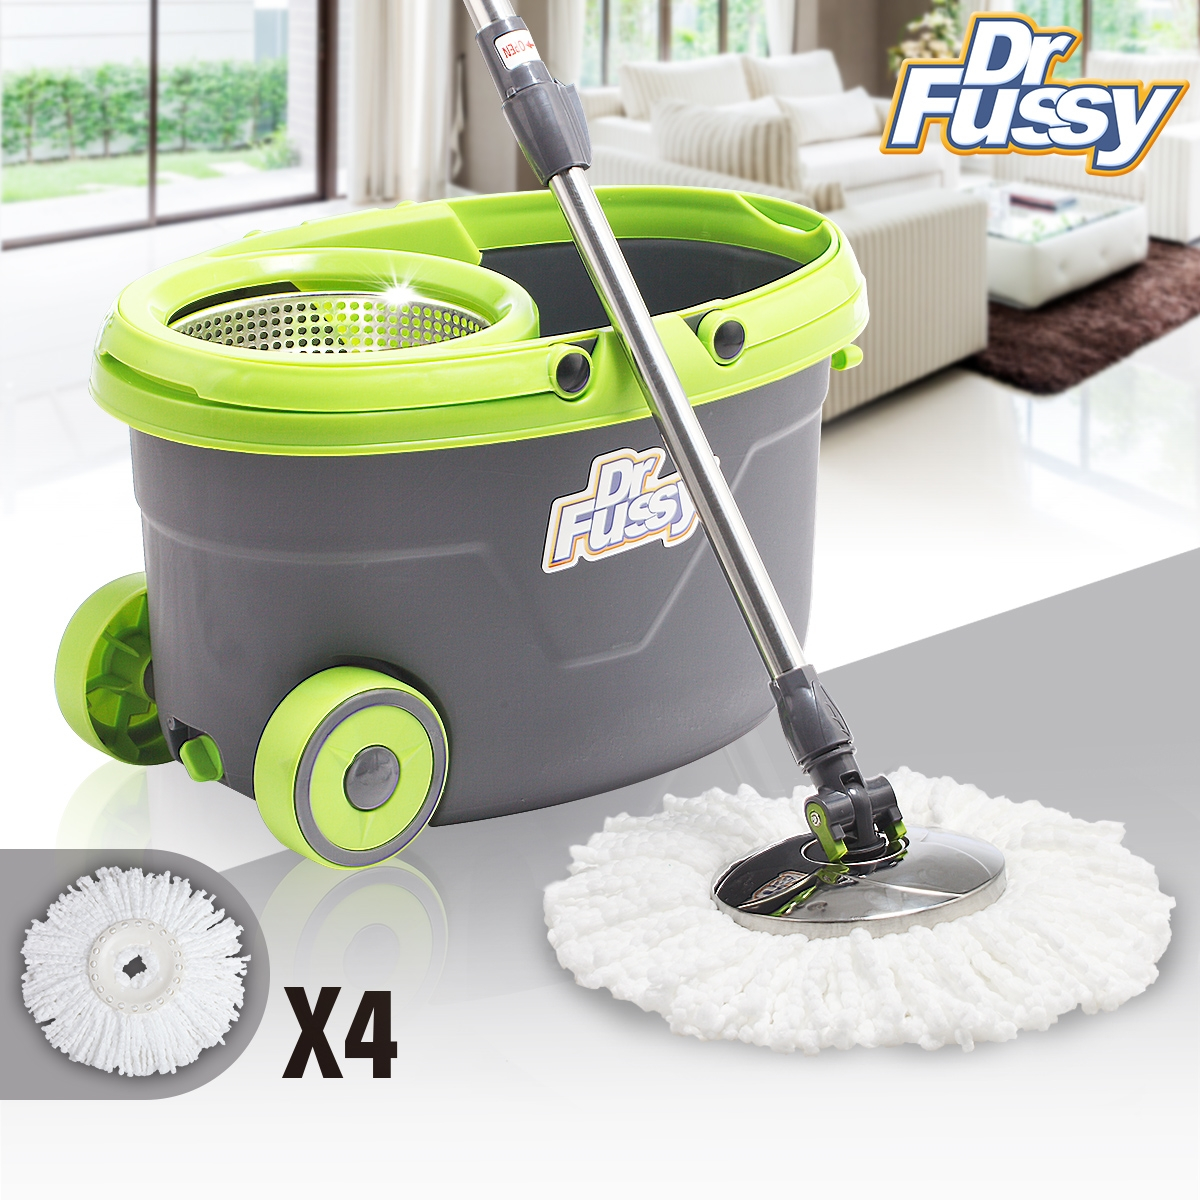 360 Easy Wring Spin Mop and Stainless Steel Bucket System with Wheels Includes 4 Free... by YY